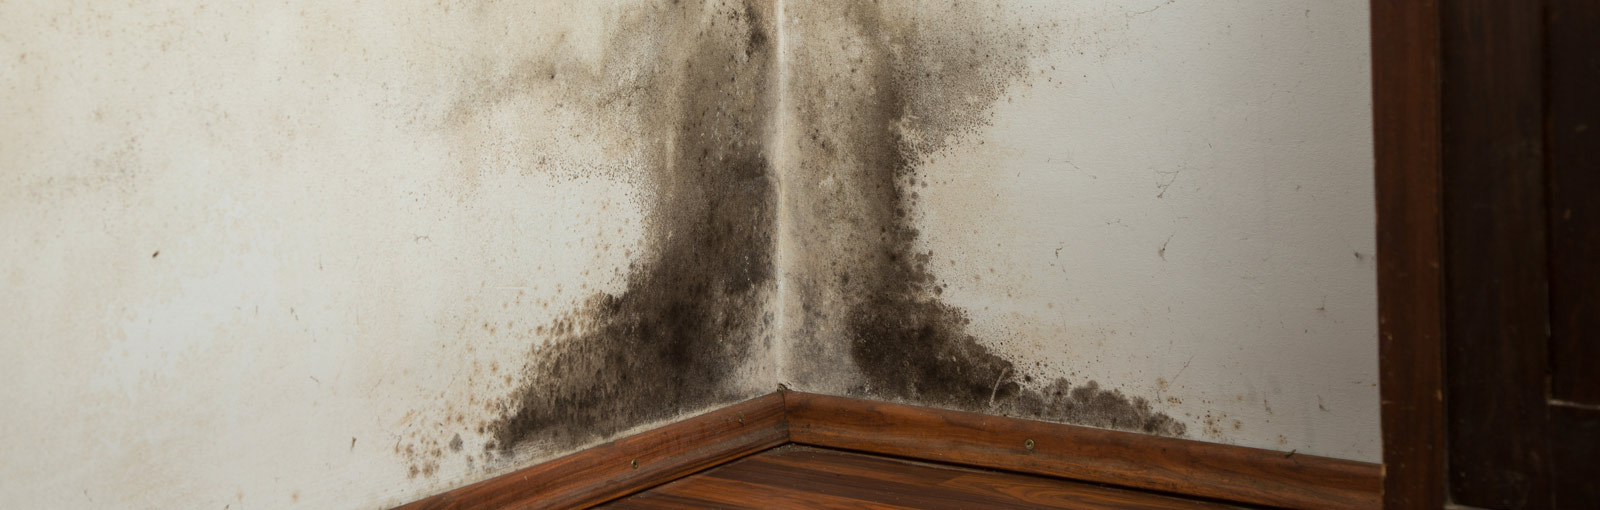 Mold in a corner